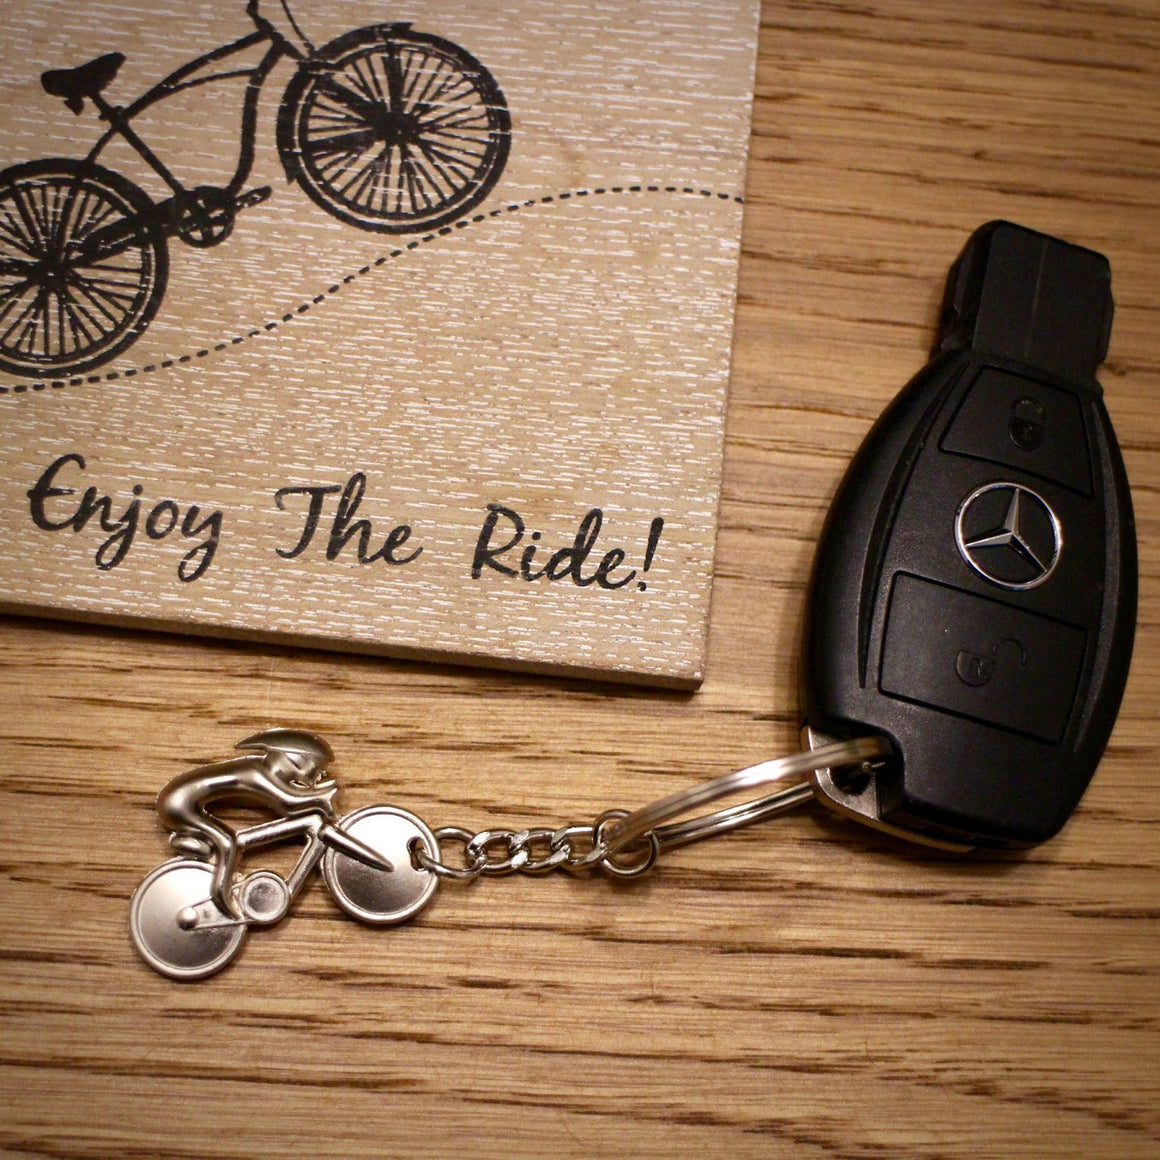 Alloy 3D Road Bike Keyring